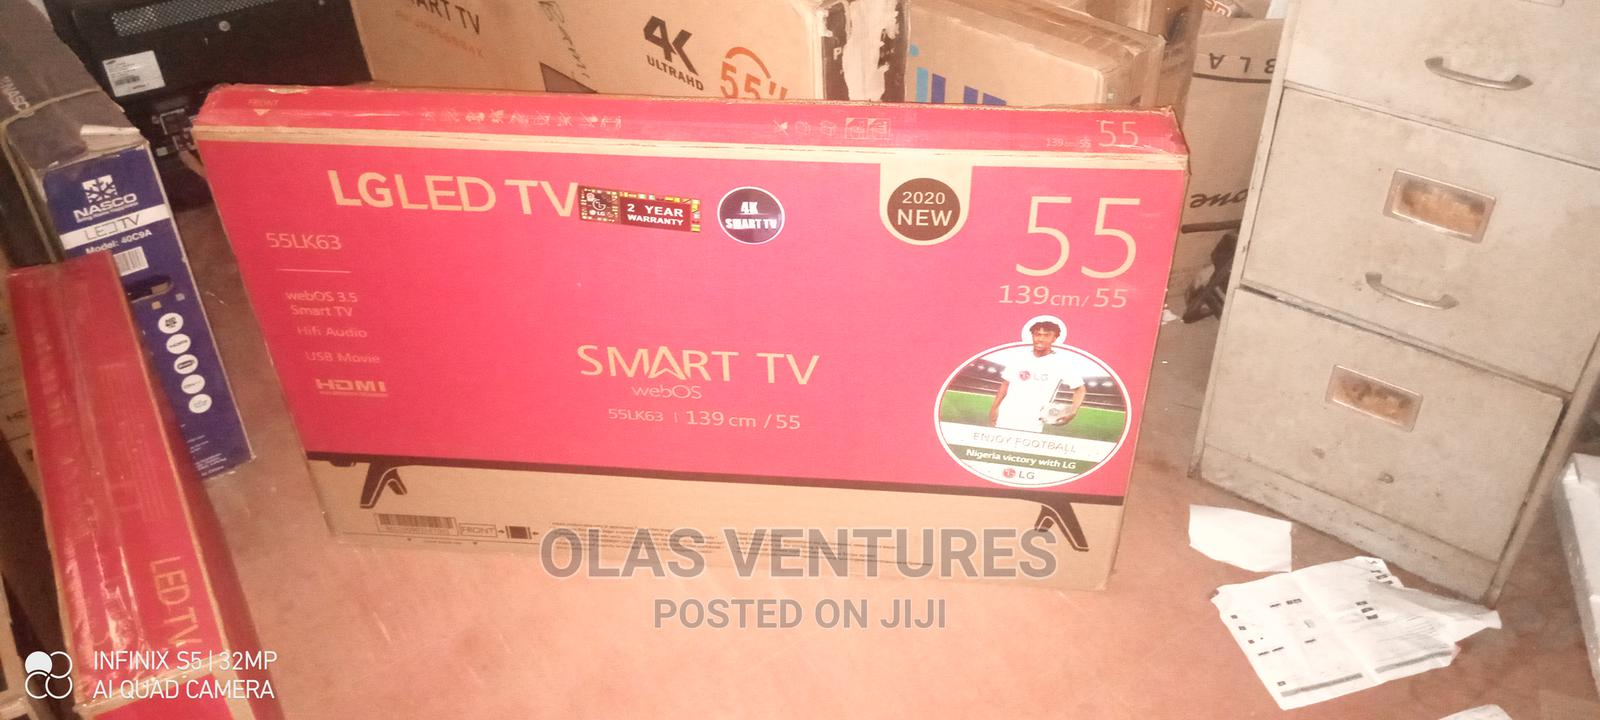 LG Smart TV 55 Inches